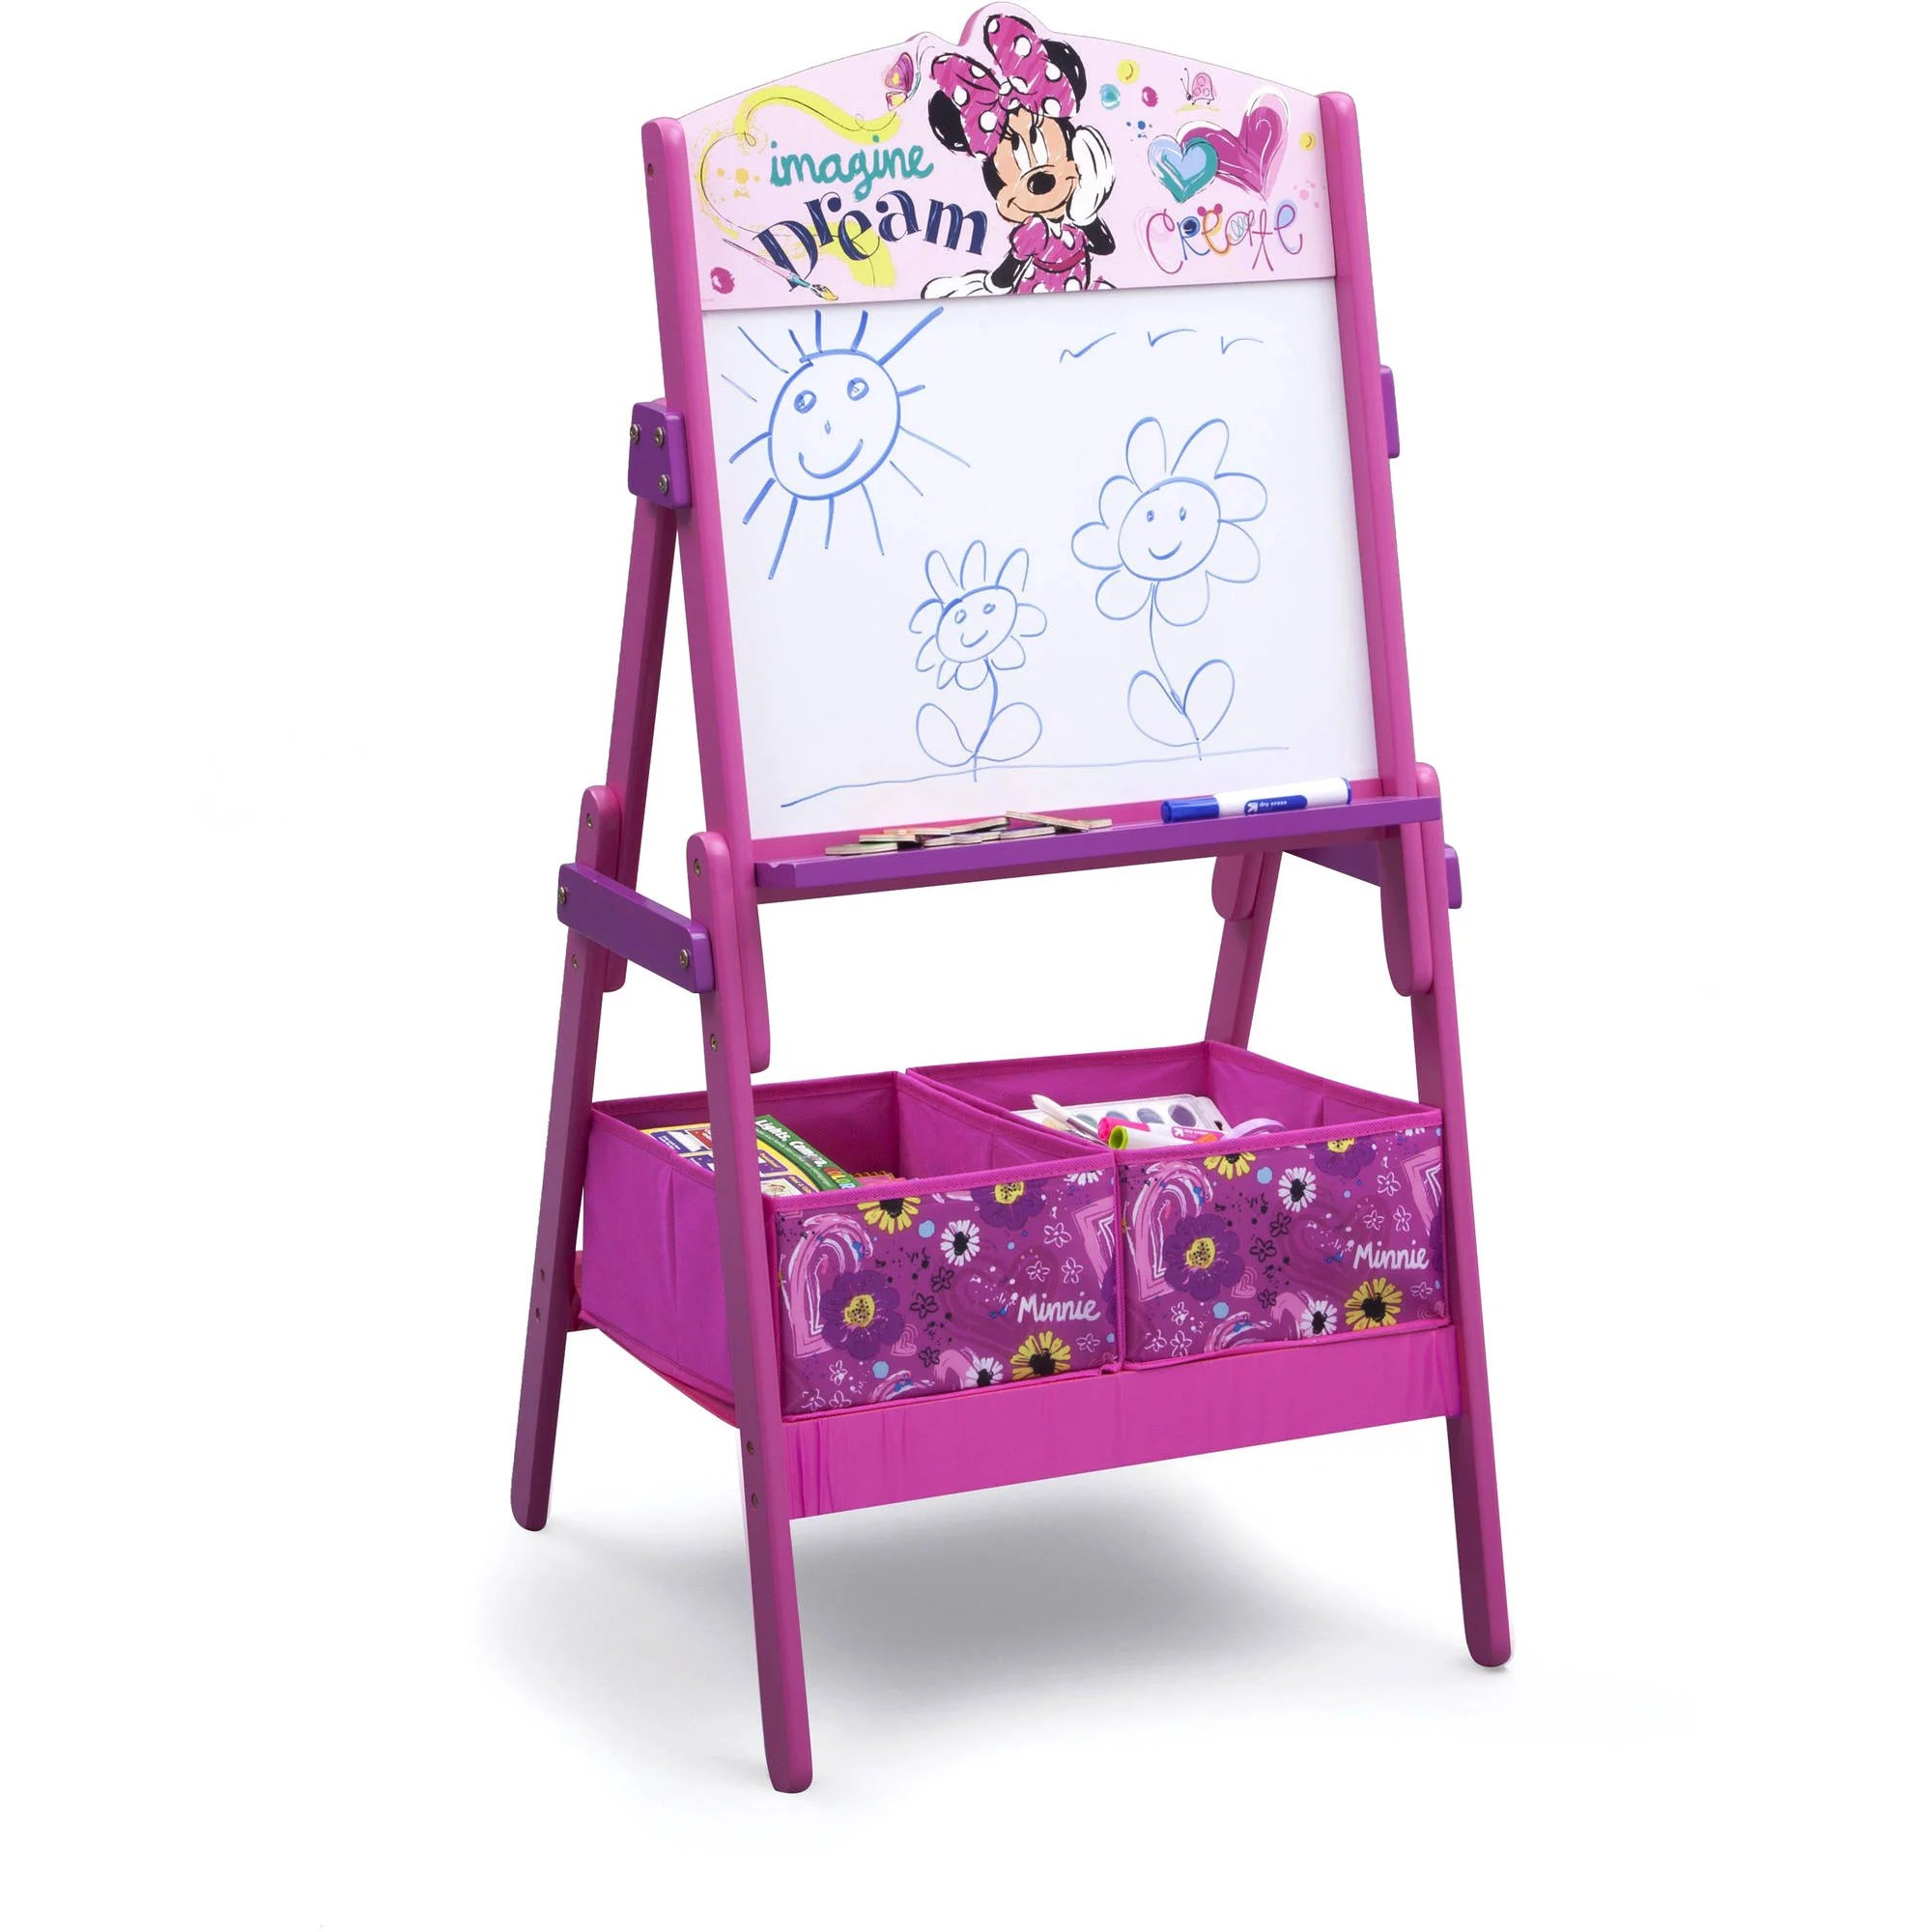 minnie mouse table and chair set canada yellow metal chairs step 2 art desk toys r us hostgarcia